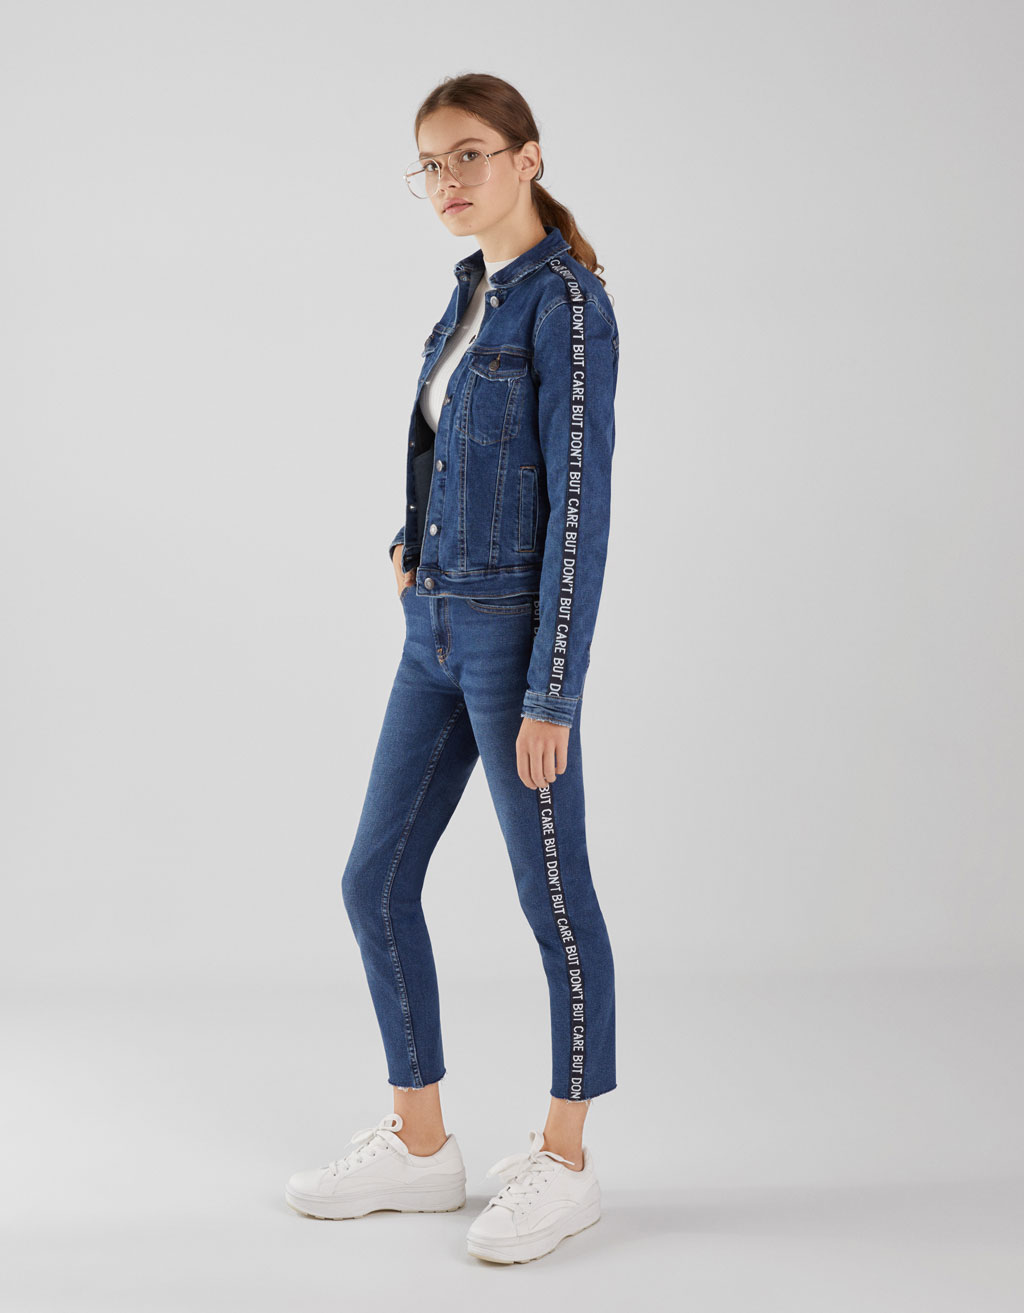 Mid-rise skinny jeans with side taping